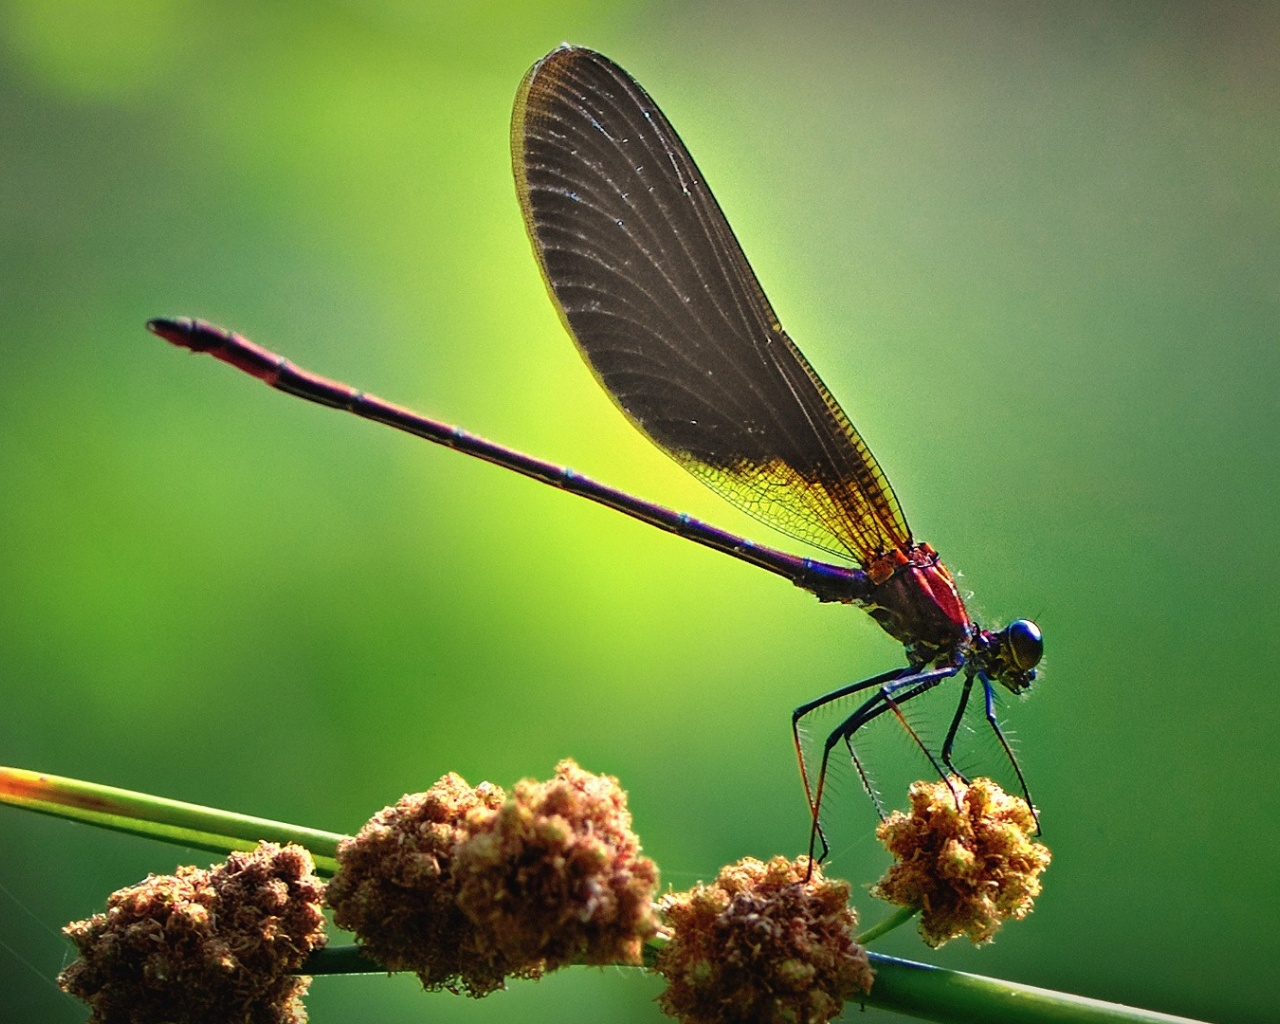 Iphone wallpaper cute - Cute Animal Images Dragonfly Macro Green Background